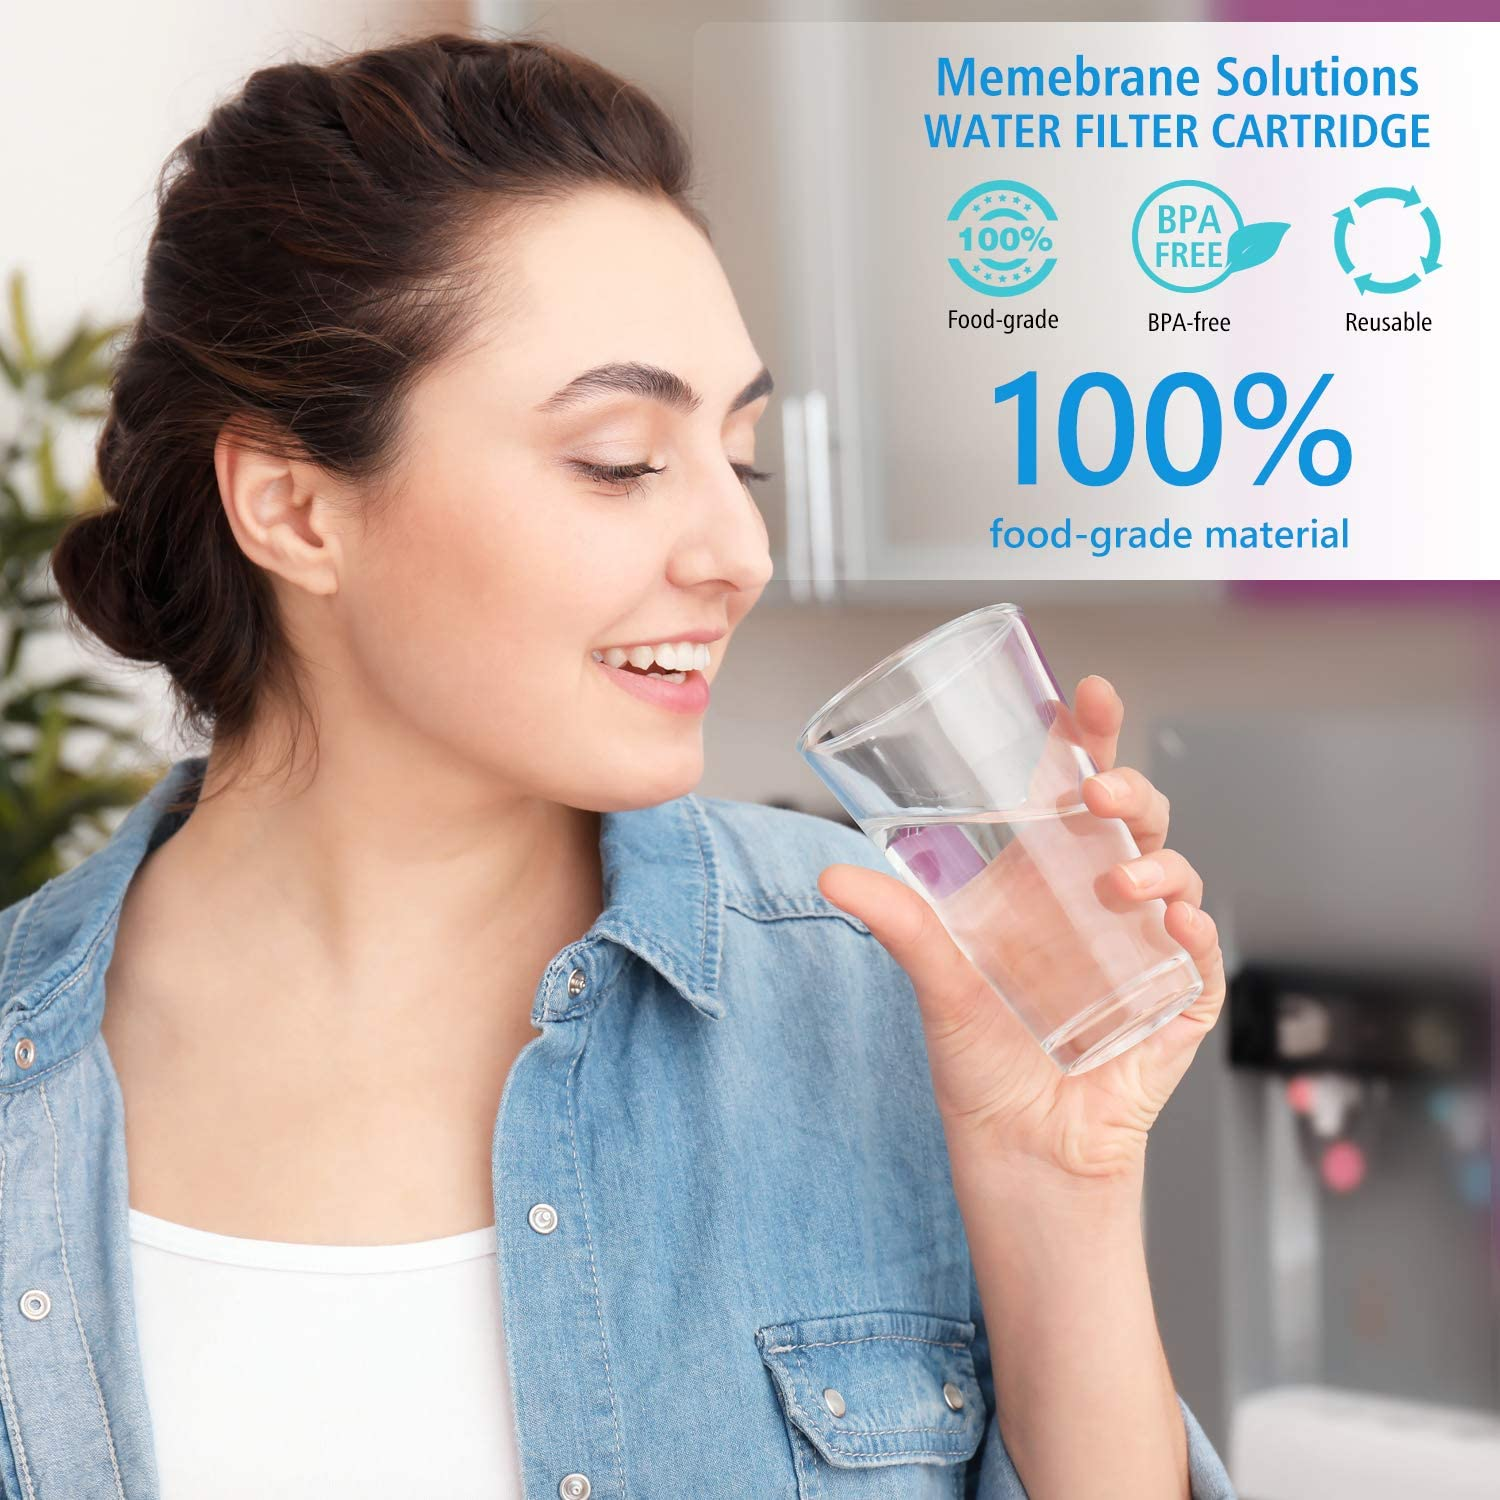 SimPure 3 Stage Dual Countertop Water Filter with Carbon Block and Ceramic Cartridge, Water Purifier Filtration System Removes 99.99% Harmful Contaminants for Healthier Water, 304 Stainless Steel: Home & Kitchen